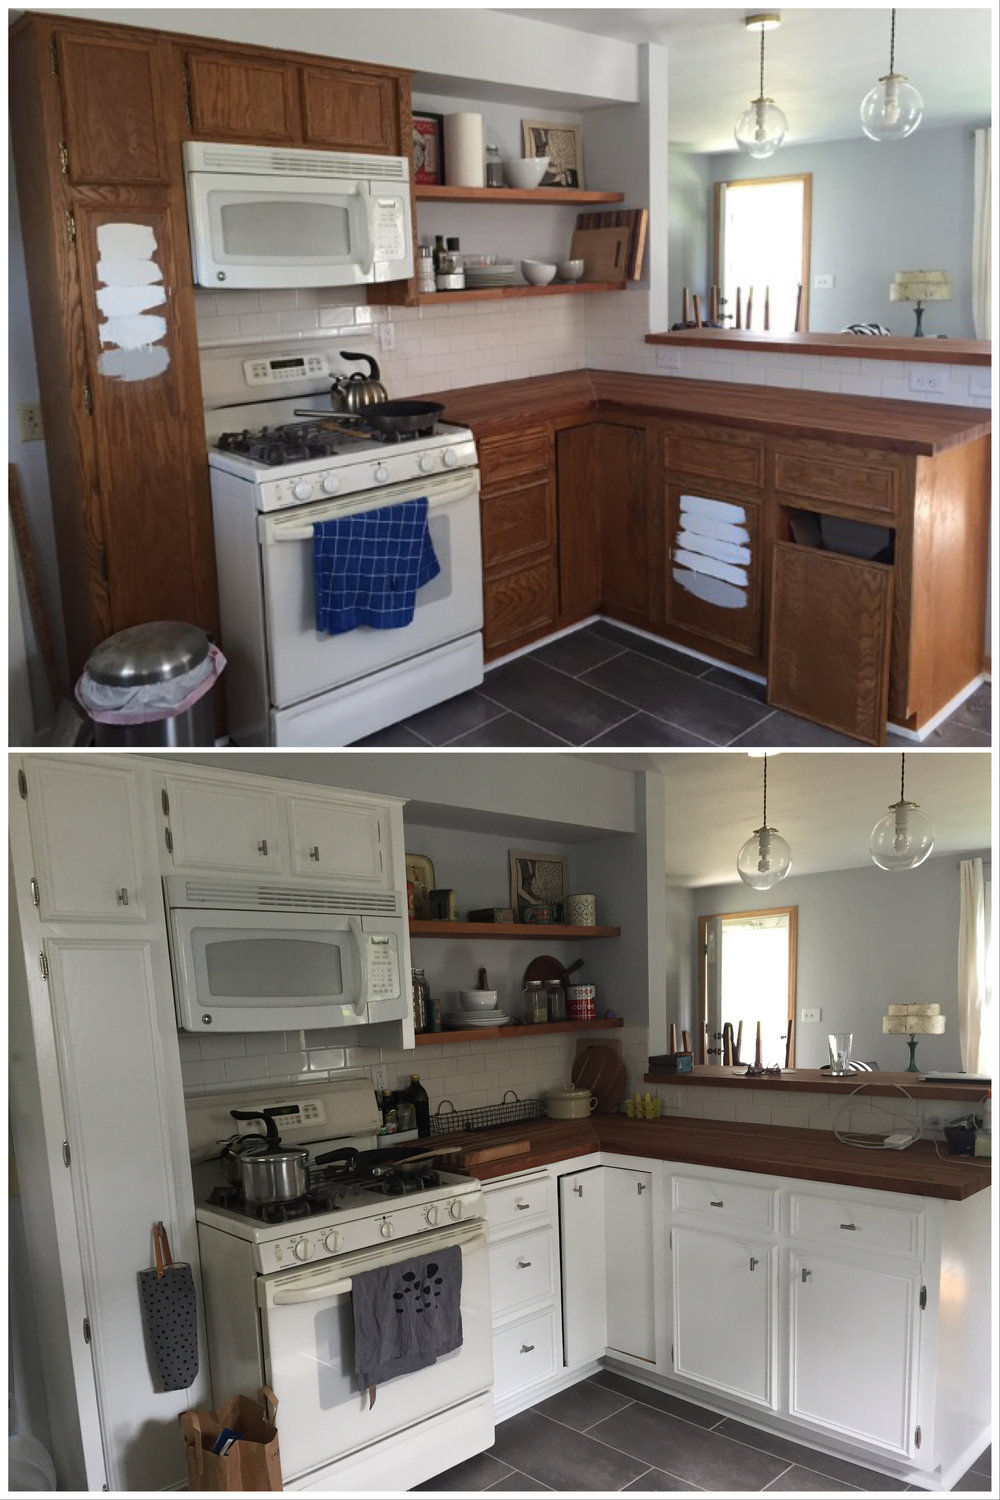 Kitchen Cabinets - Before and After